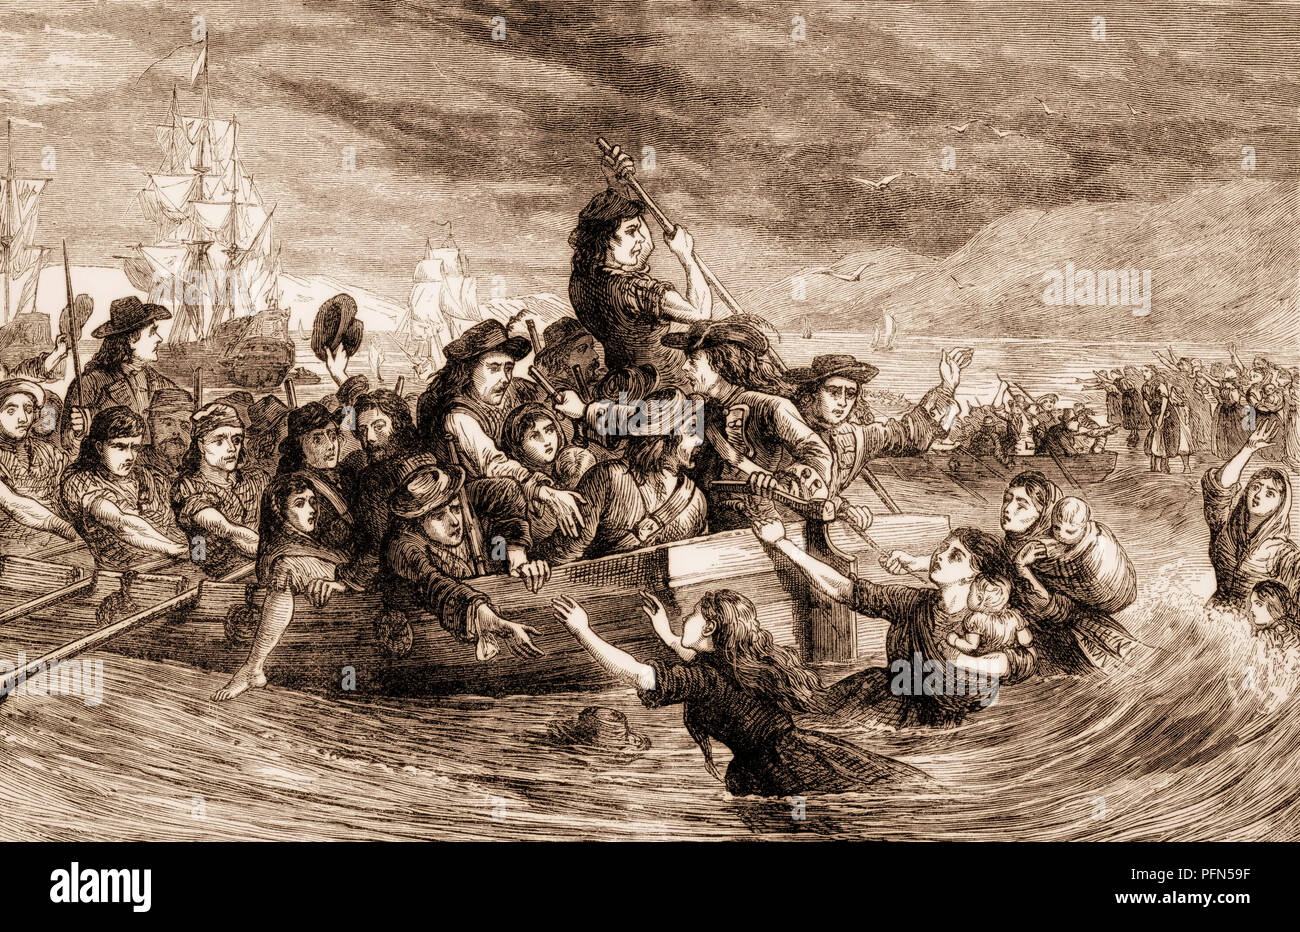 The Siege of Limerick, Williamite War in Ireland, From British Battles on Land and Sea, by James Grant - Stock Image